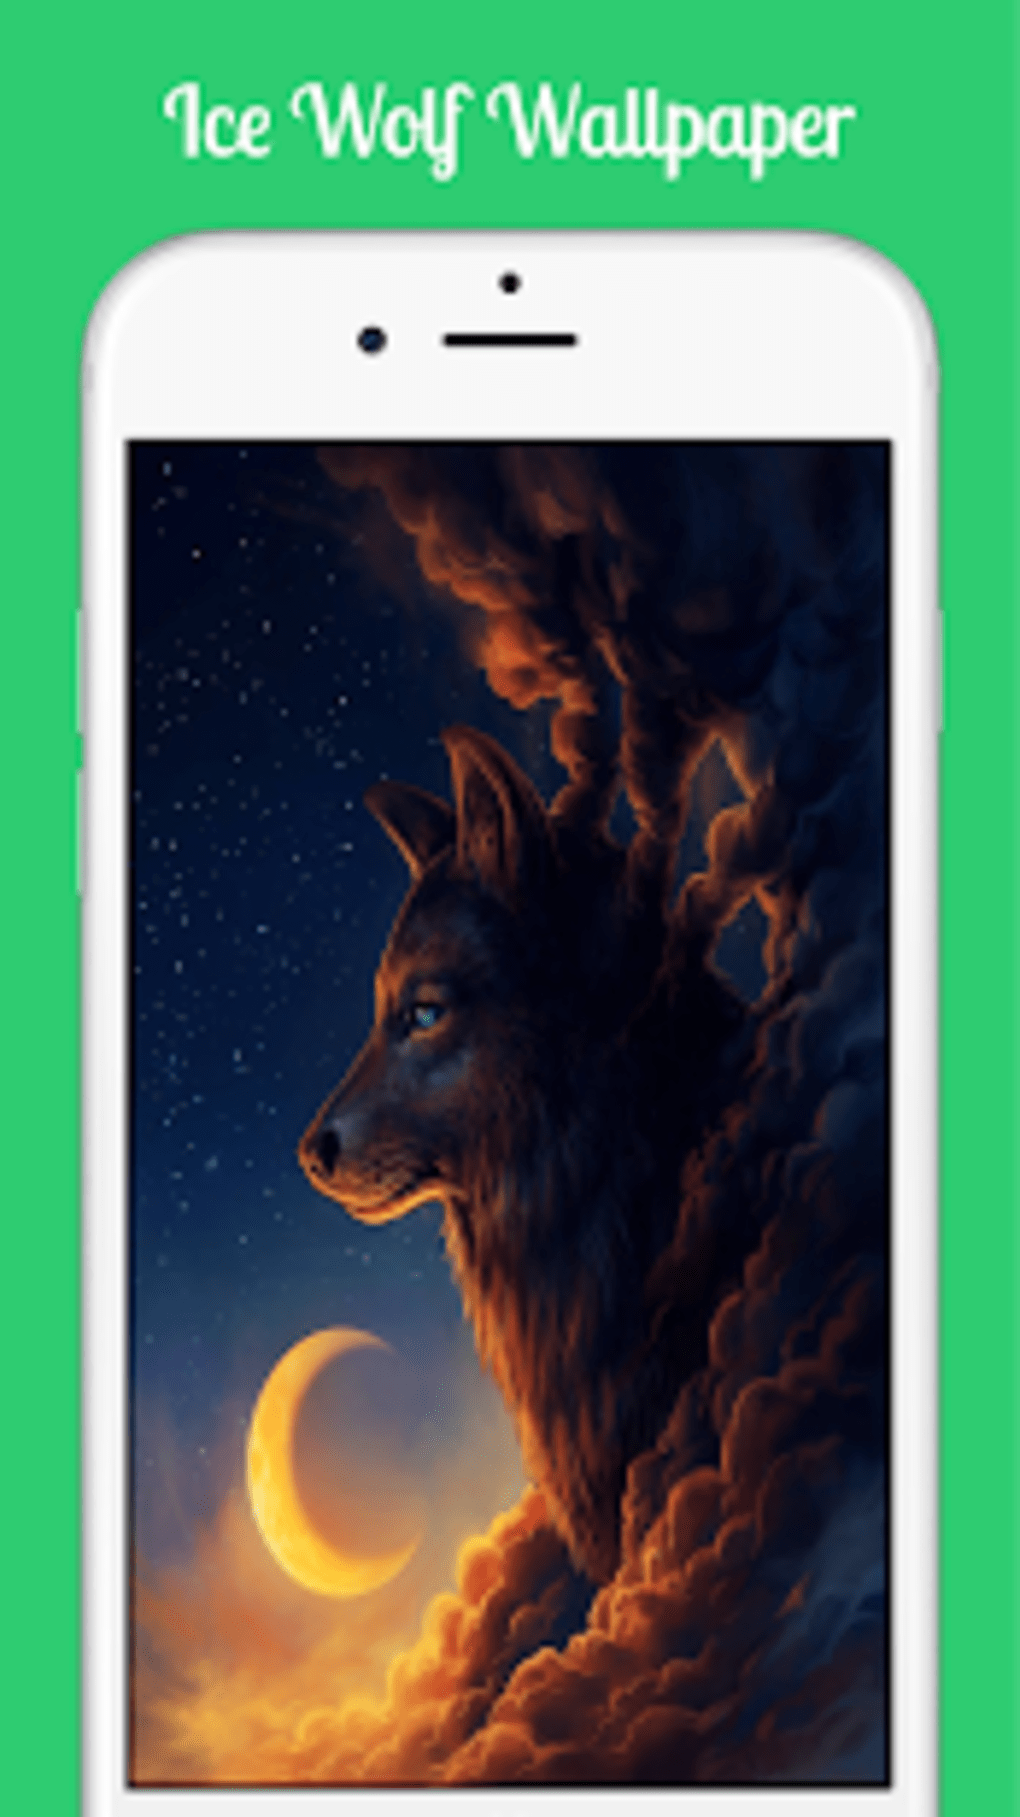 Ice Wolf Wallpaper APK for Android